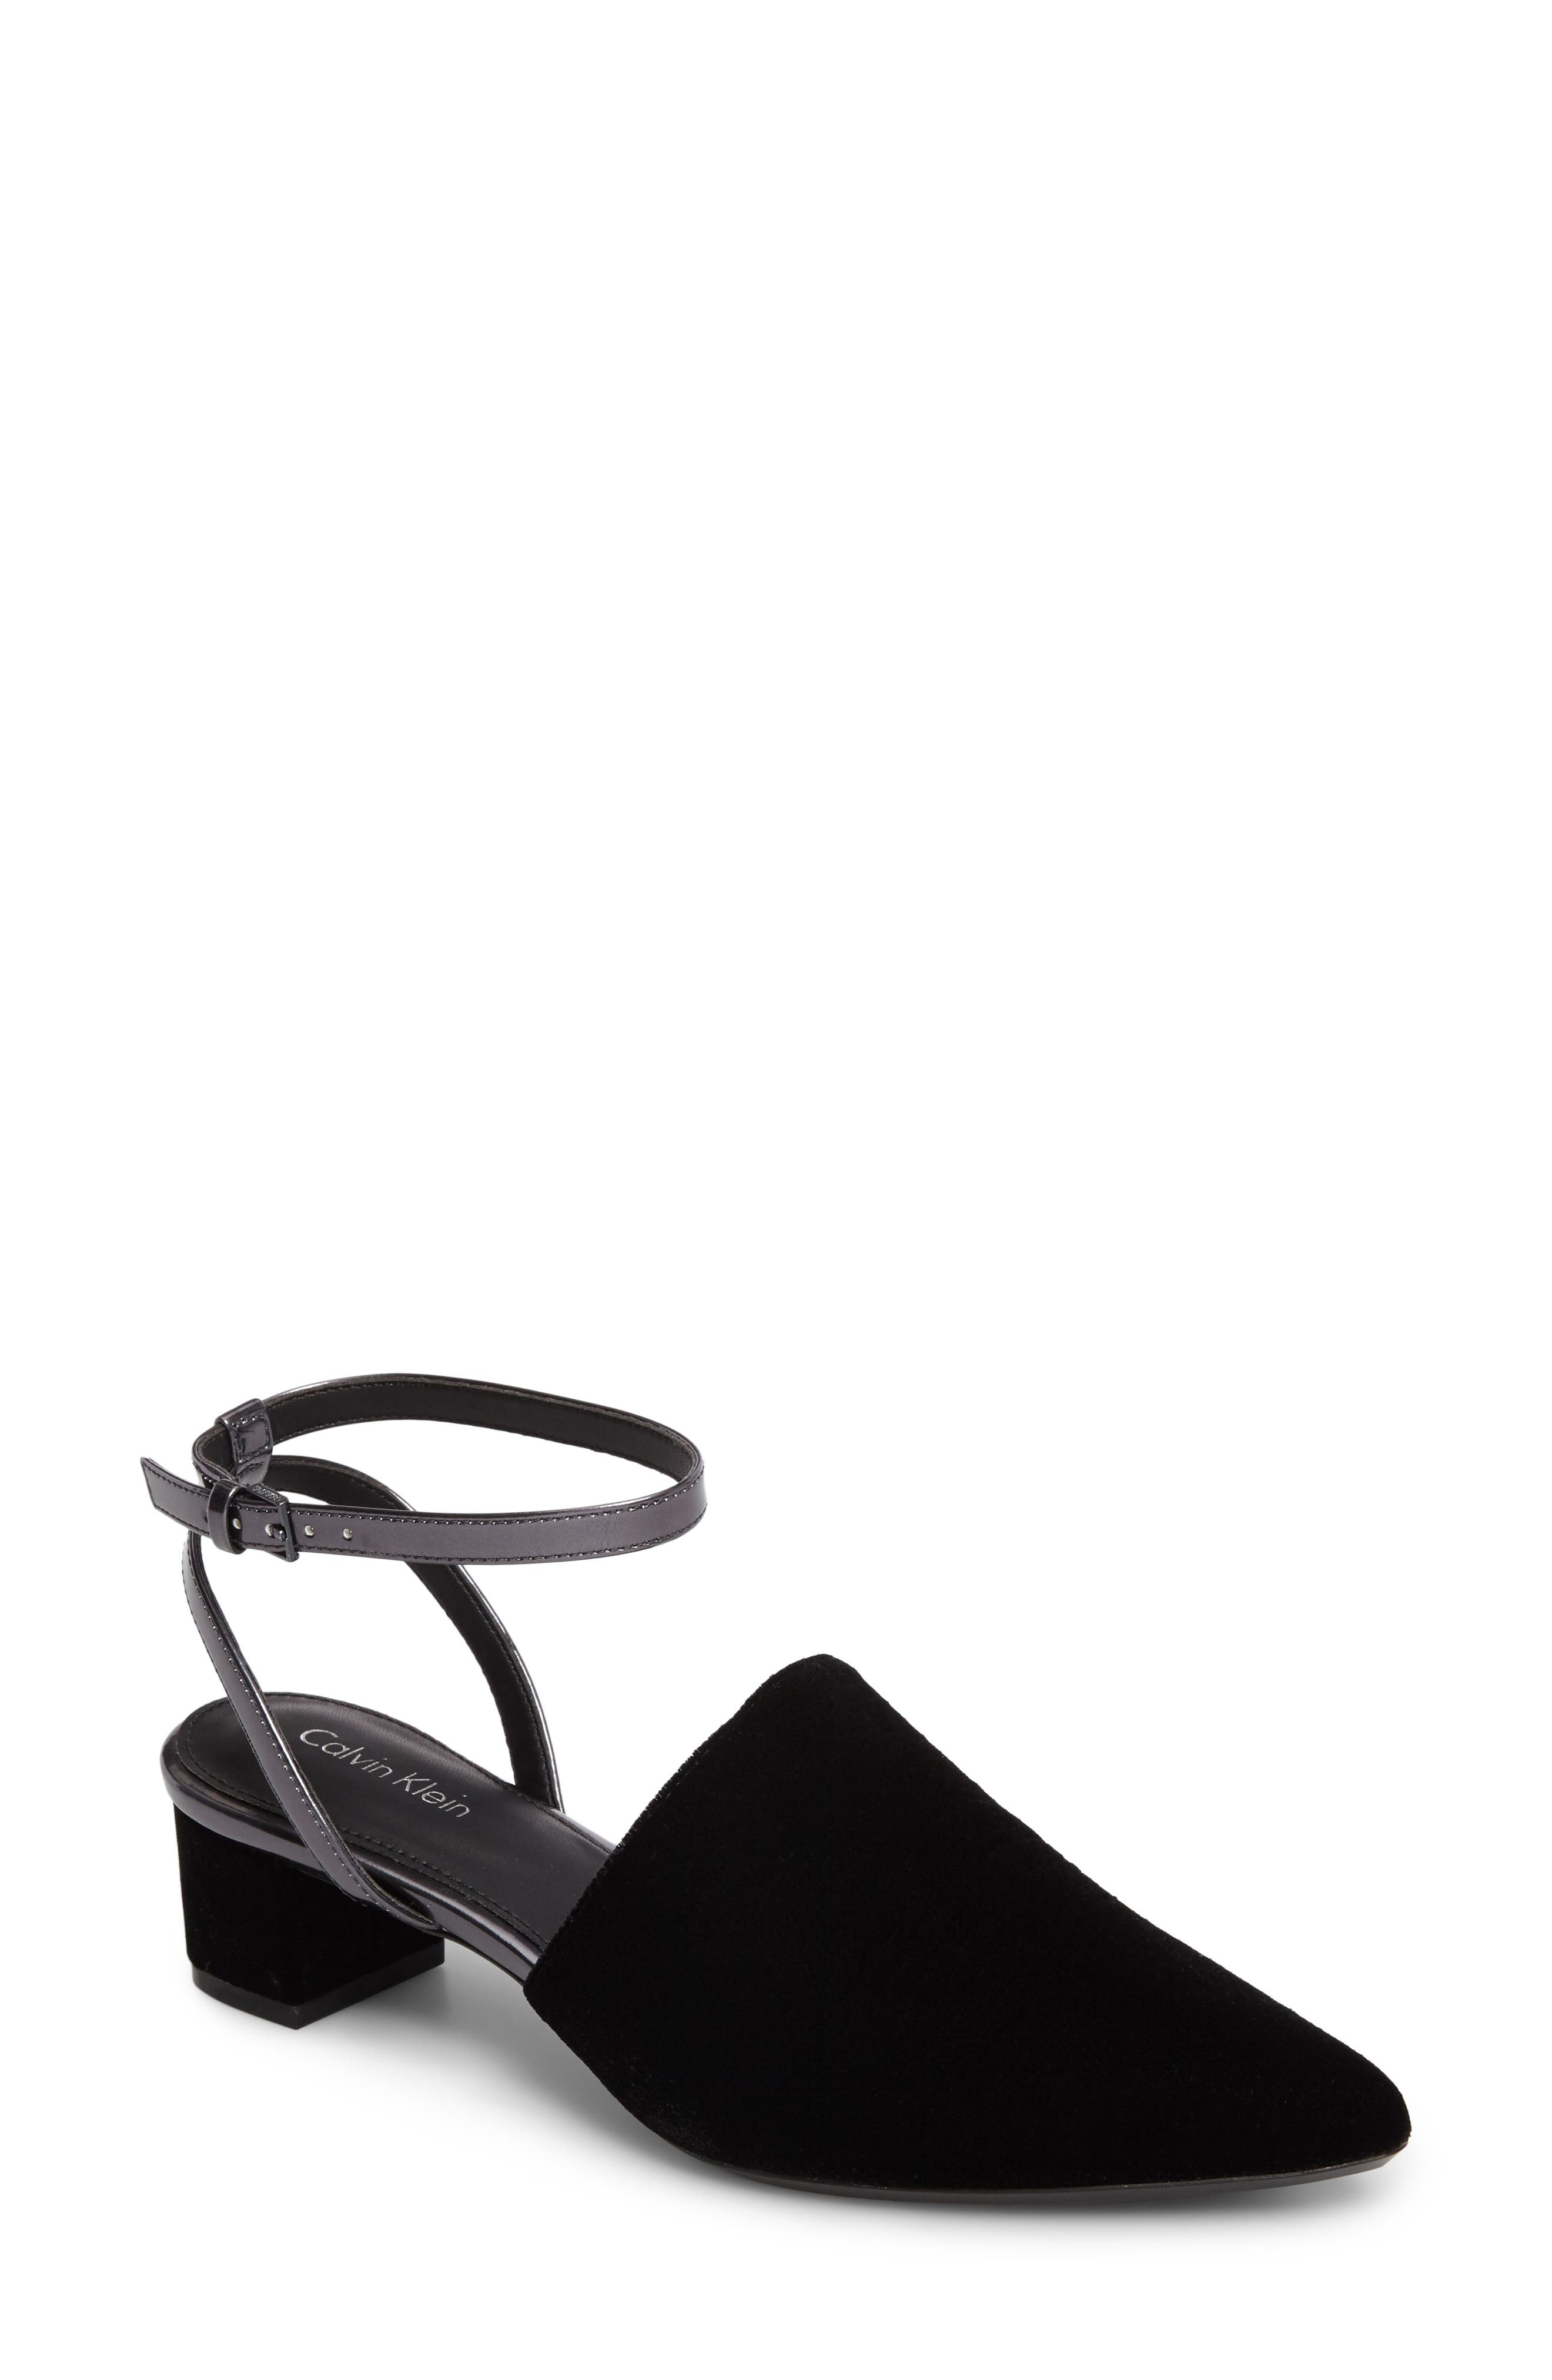 Ginetta Ankle Strap Pump,                             Main thumbnail 1, color,                             001